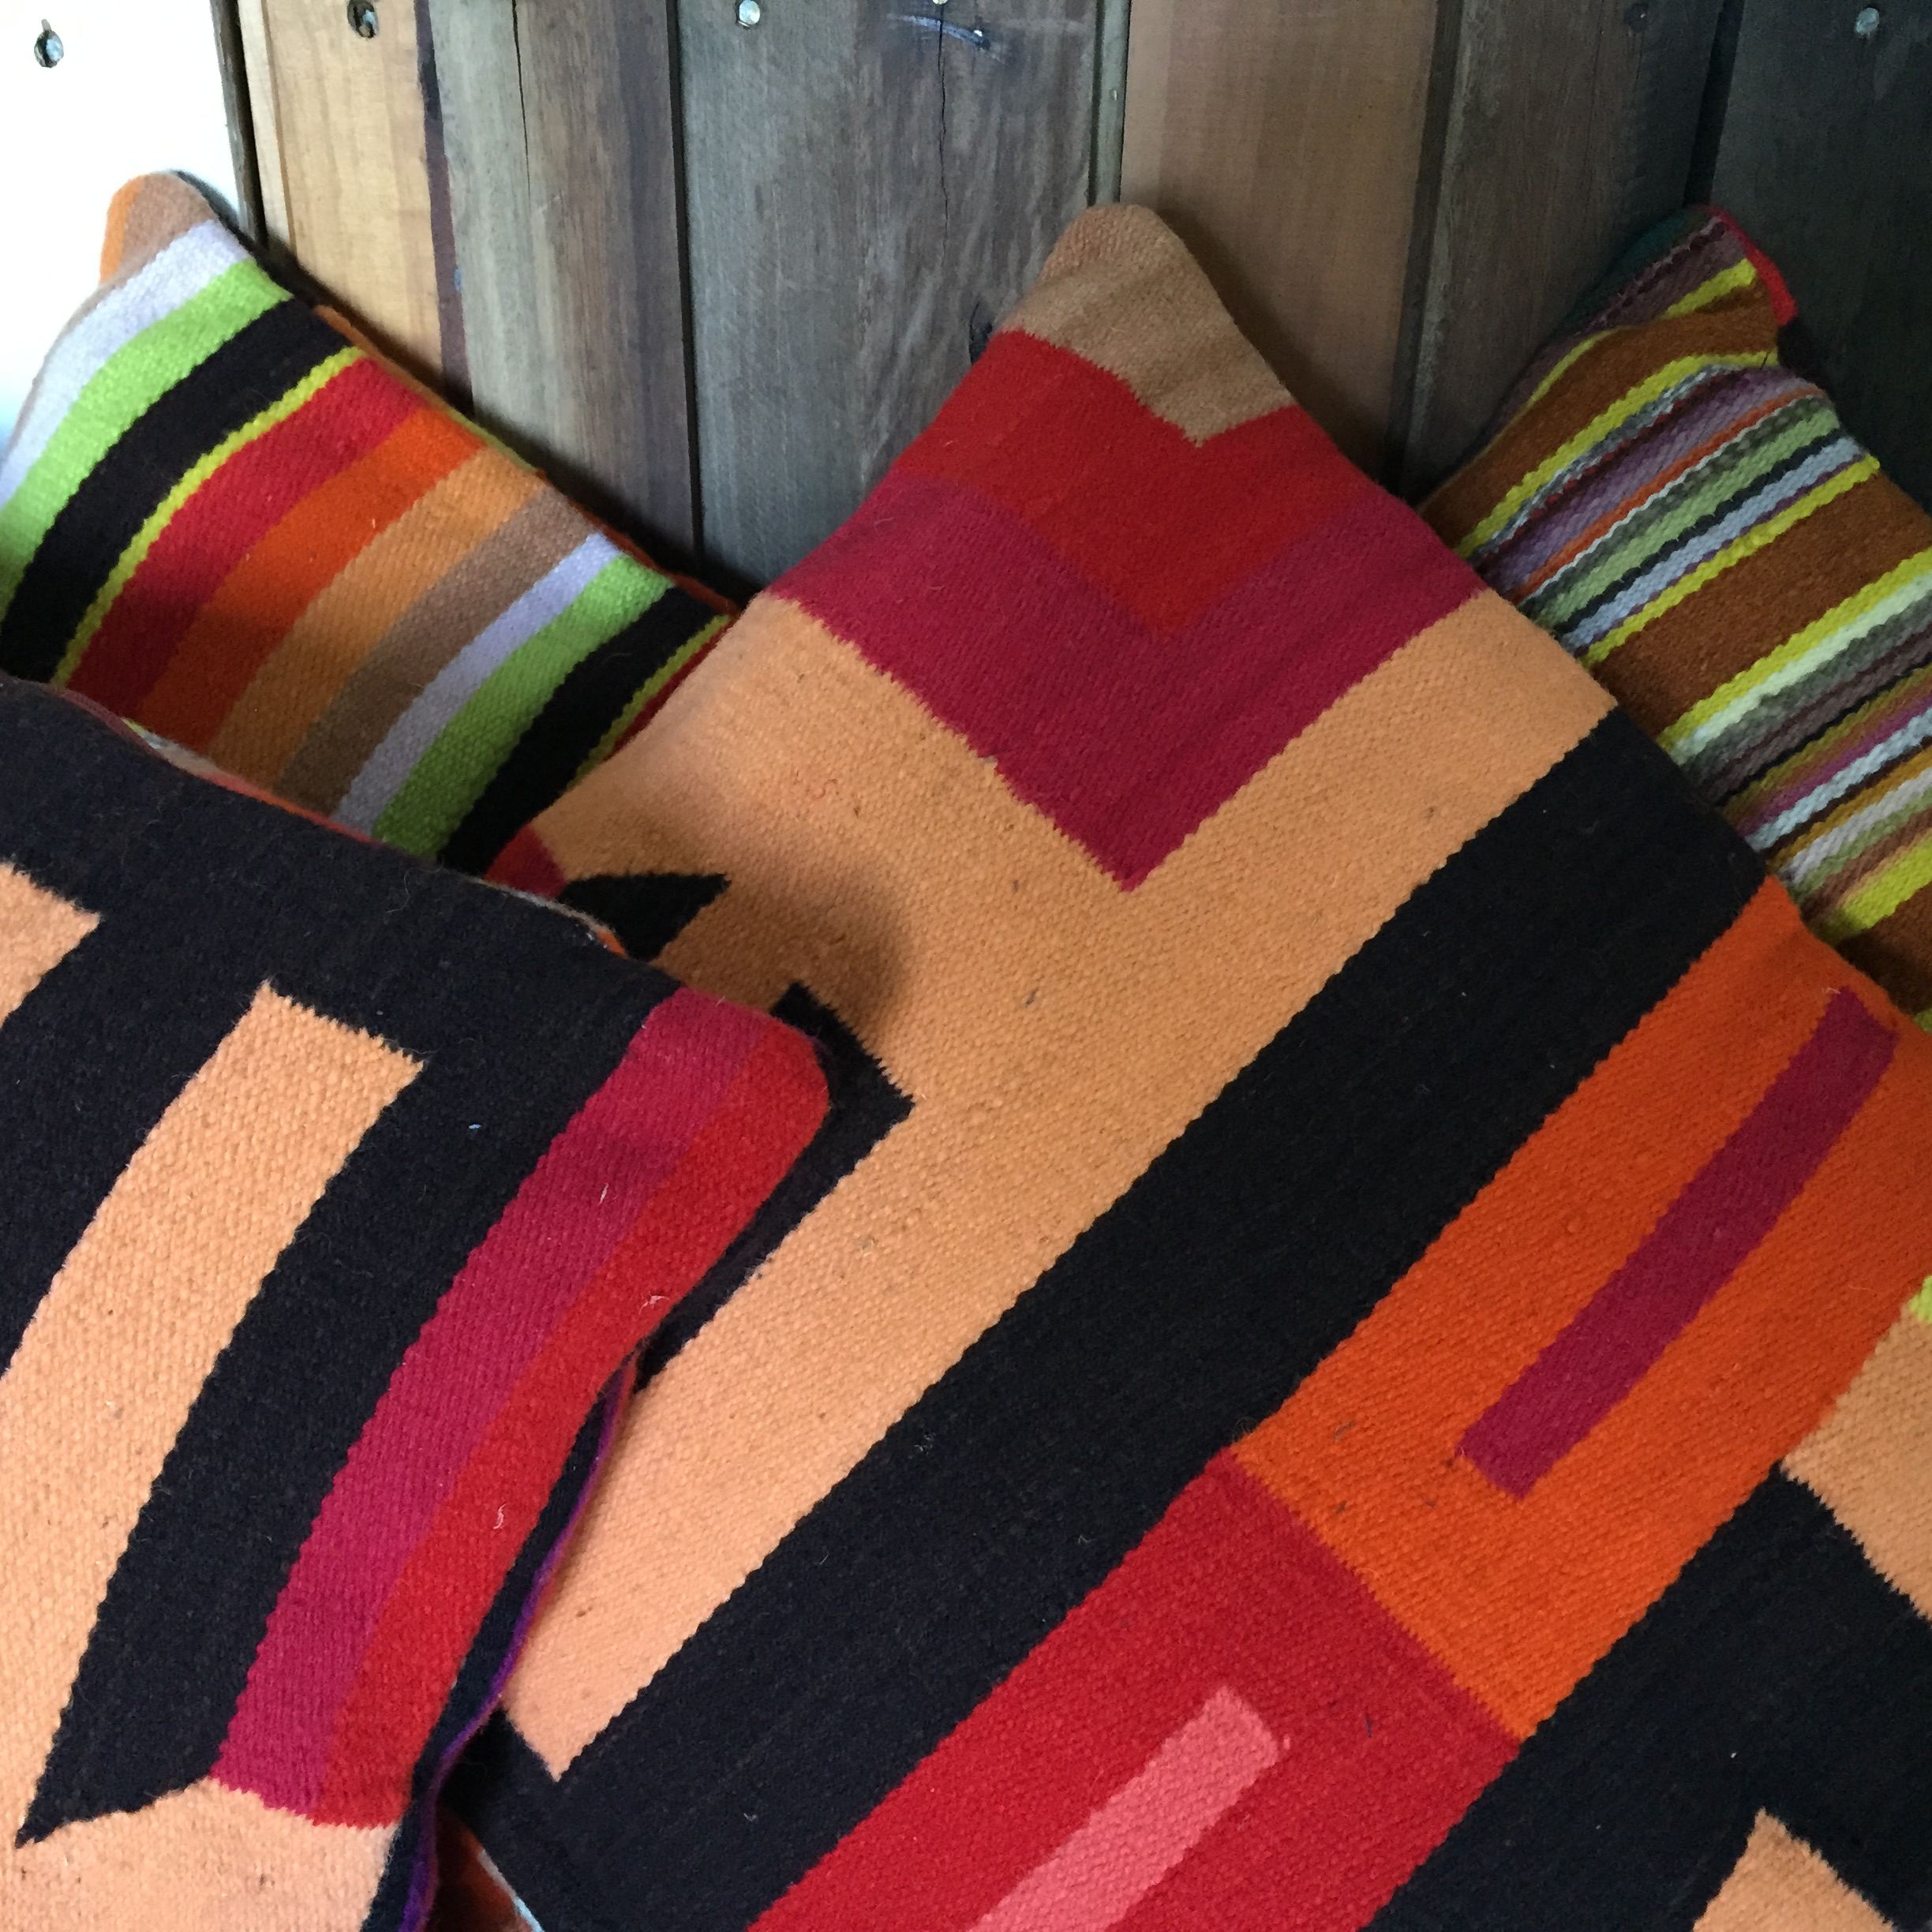 Three different patterns but they're unified by colour and geometric shapes